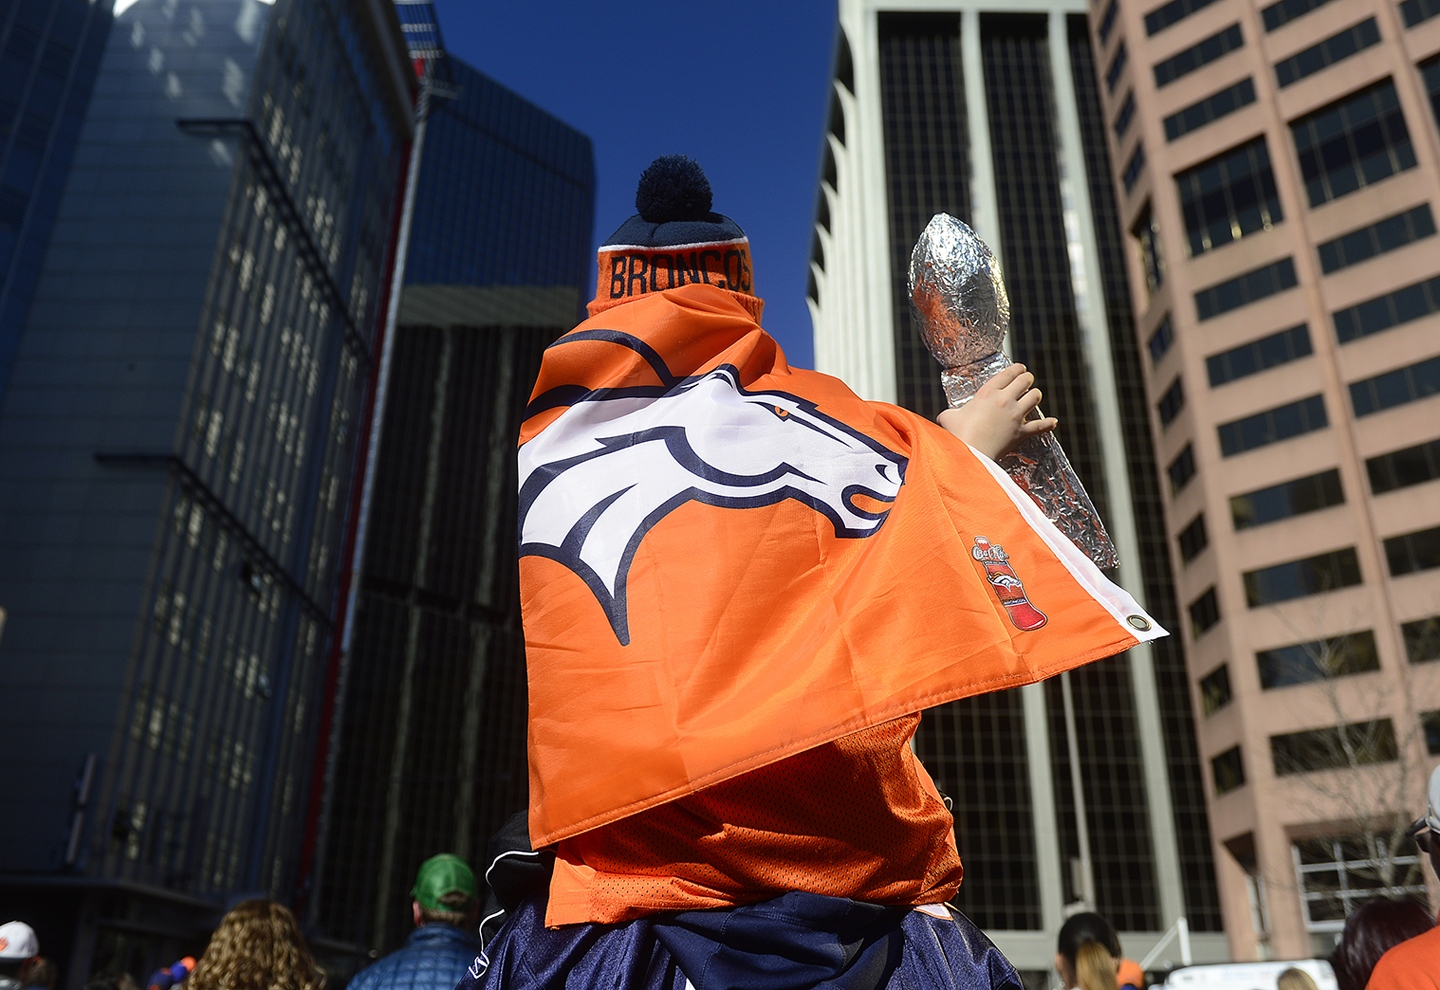 Denver Broncos Fans Rally After Super Bowl Win Matthew Jayne raises his Lombardi trophy made out of aluminum foil abouve the crowd while leaving downtown on February 9, 2016 in Denver, Colorado. Fans gathered to celebrate the Denver Broncos' Super Bowl win with a parade and a rally in Civic Center Park. (Photo by Brent Lewis/The Denver Post)